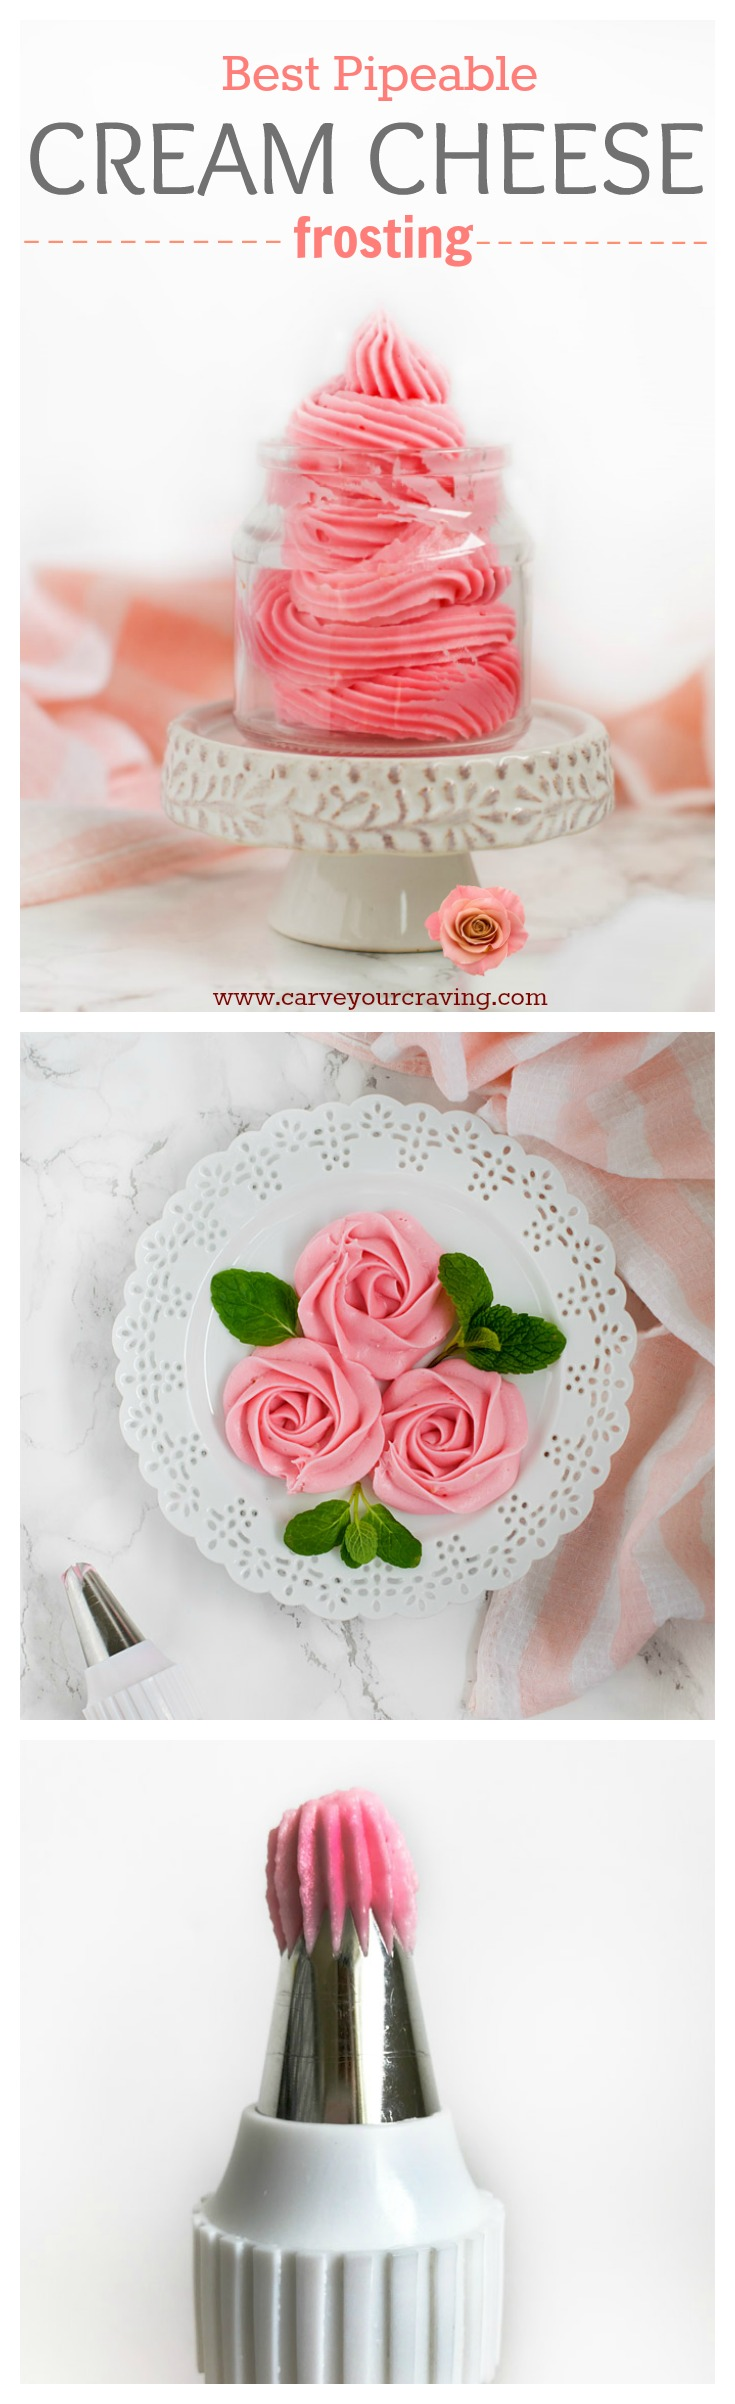 Cream Cheese Frosting For Piping And Decorating Cakes Cupcakes Sturdy To